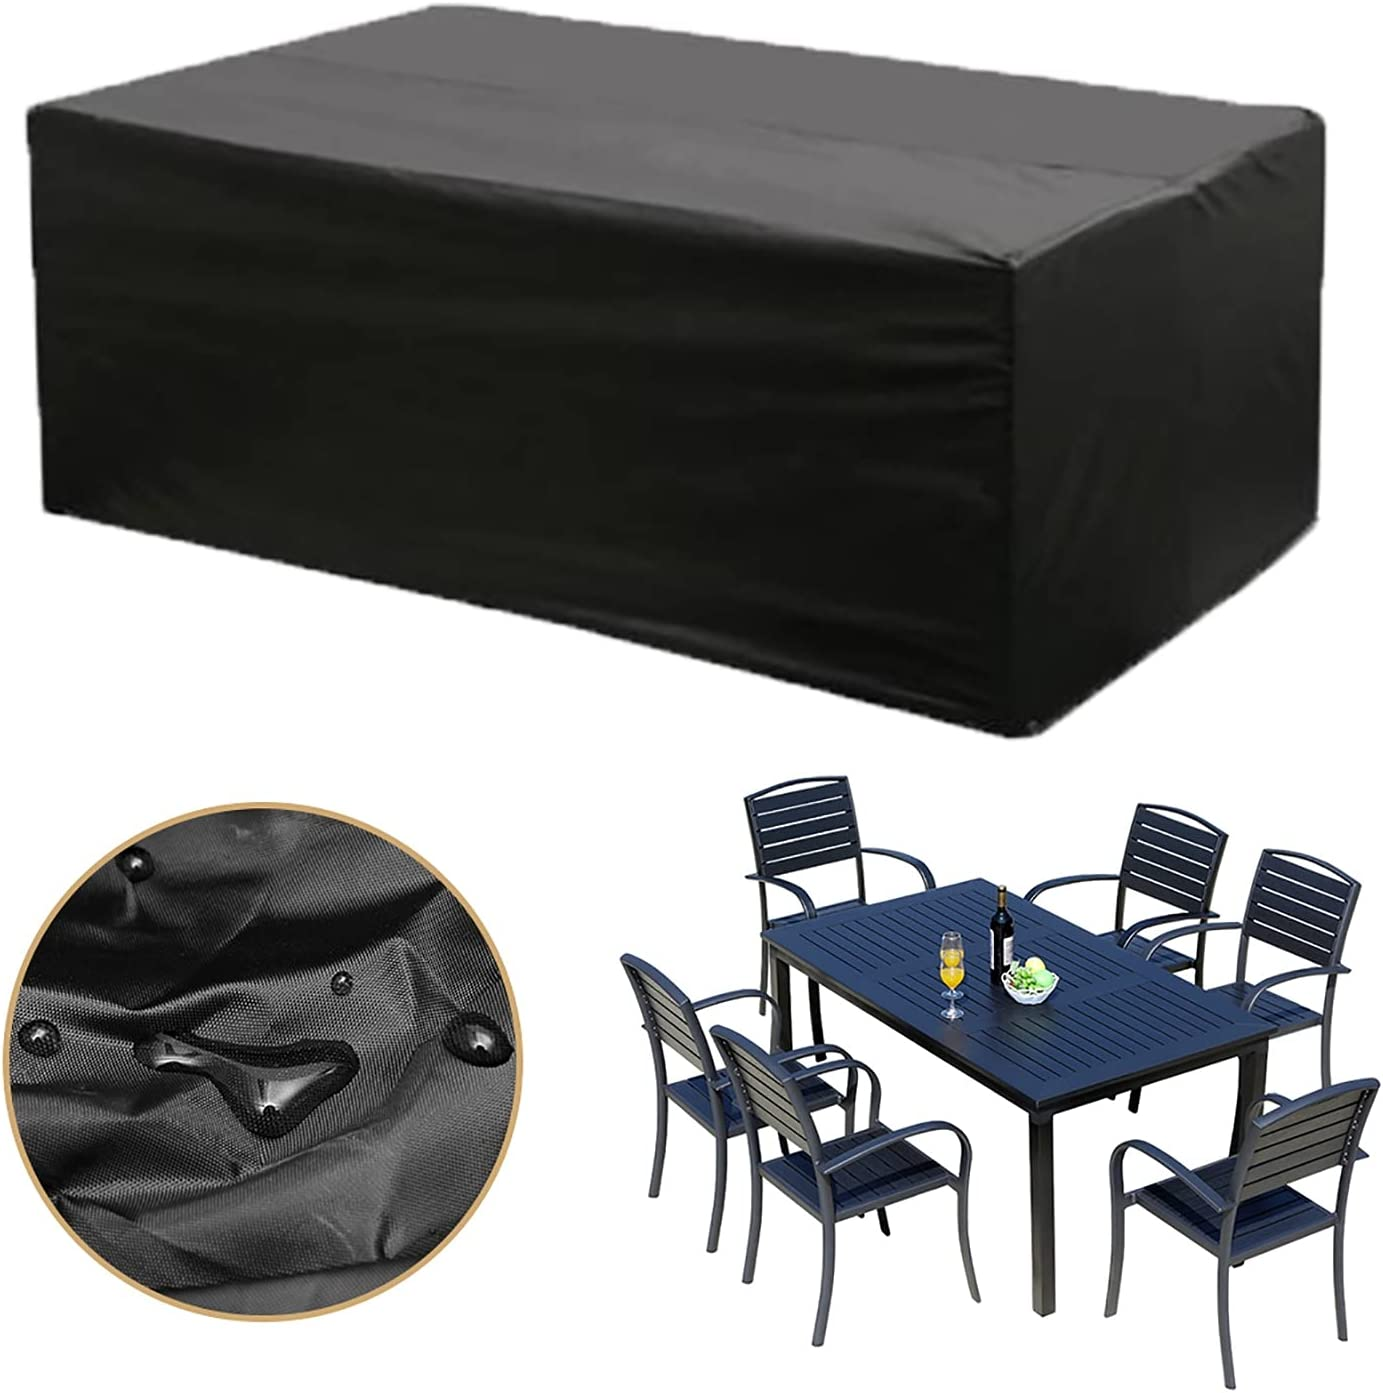 AWSAD Outdoor Patio Cover Waterproof and Tear-Resistant He Bombing new work 420D Sales for sale